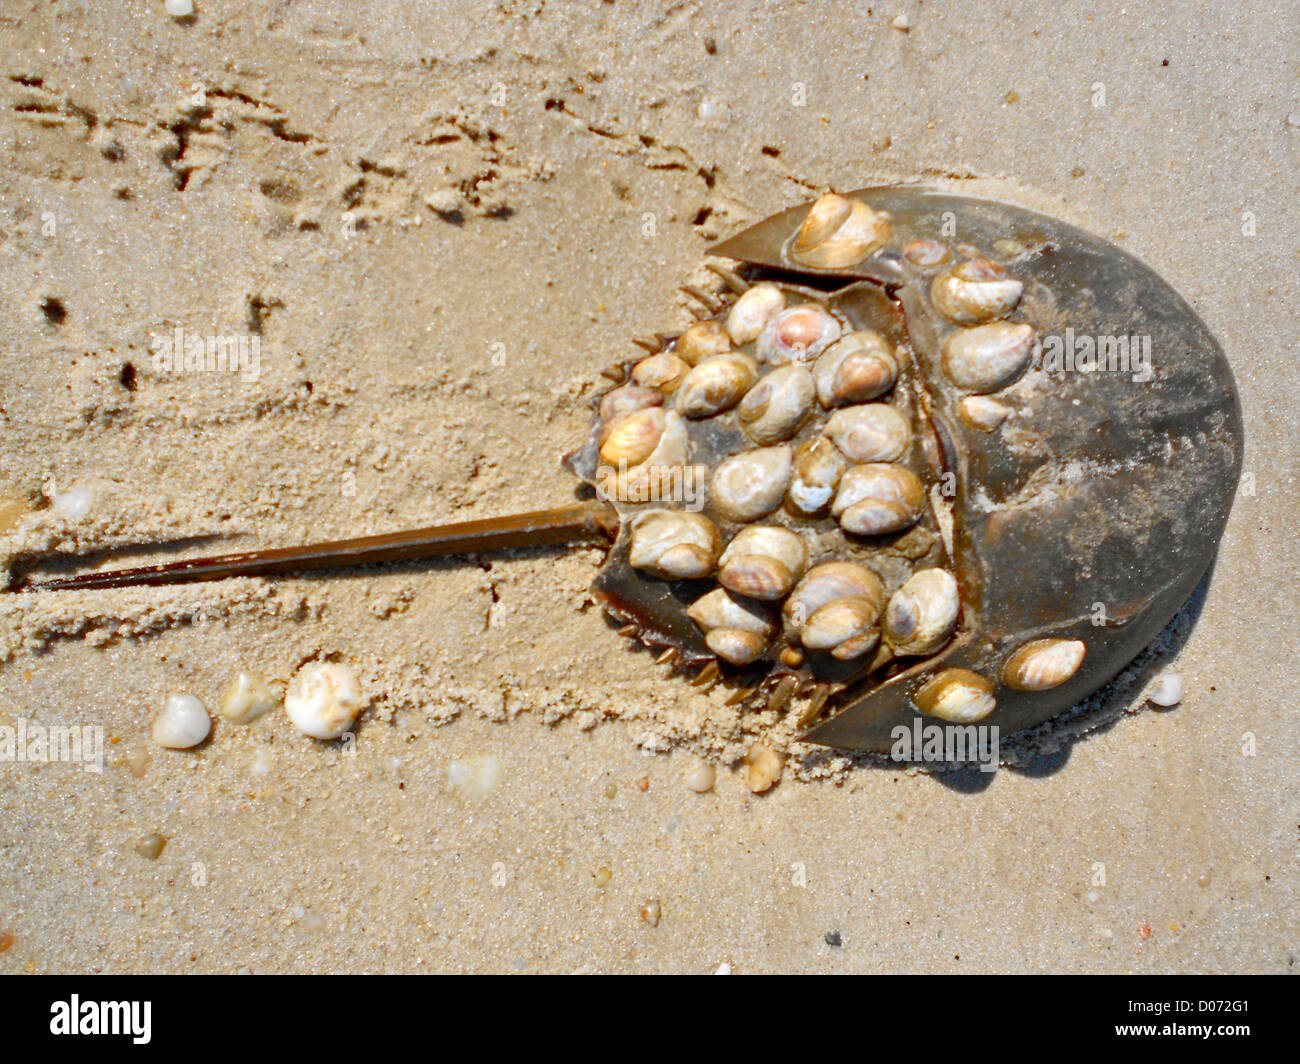 Horseshoe crab with snails (Crepidula) attached to its shell. Photo taken near Villas, New Jersey, on Delaware Bay. - Stock Image